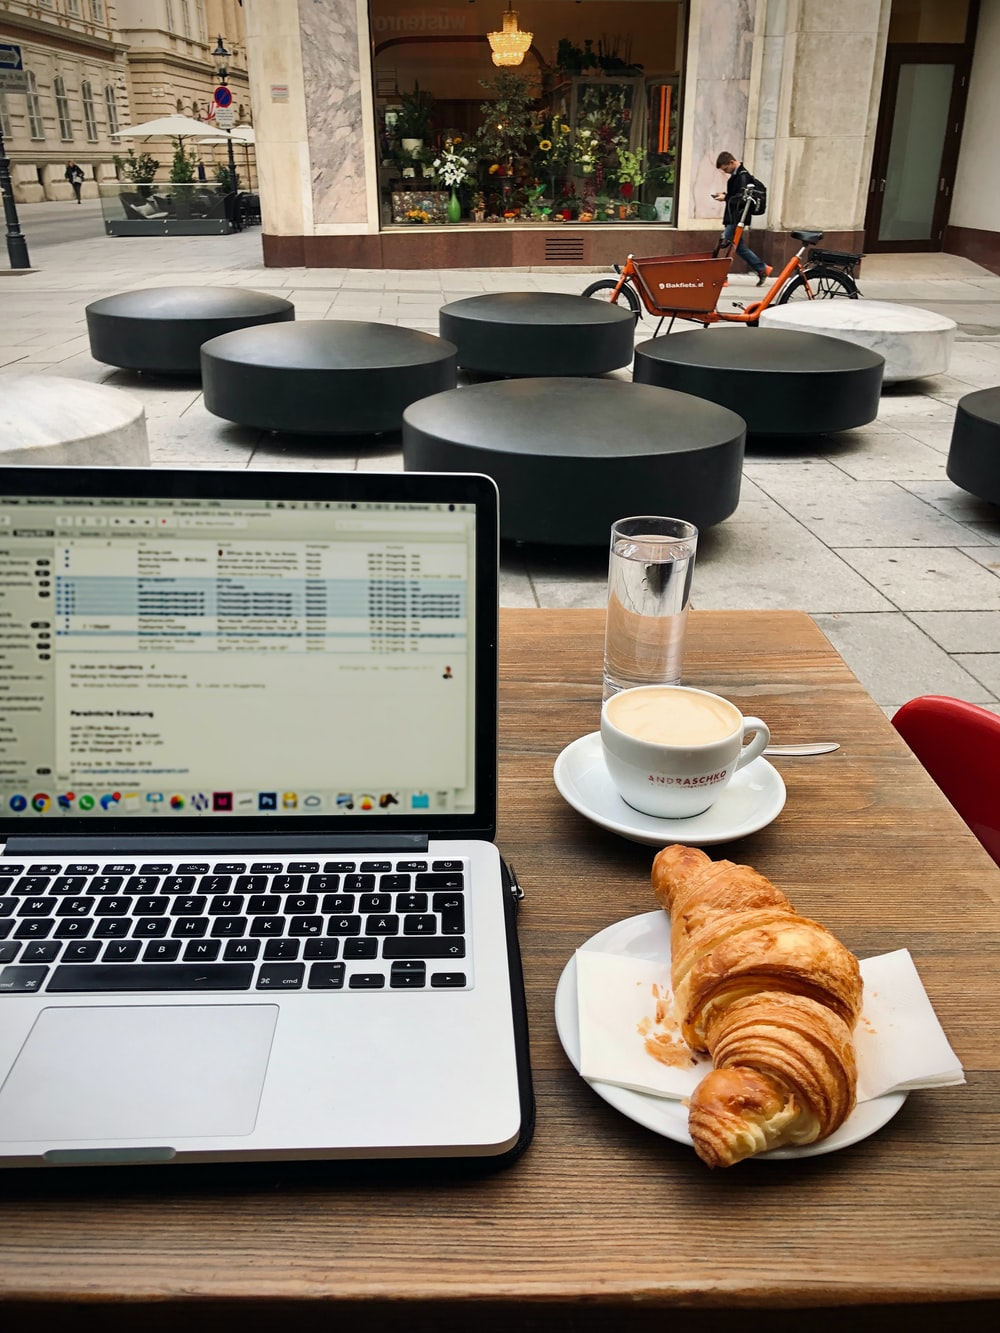 macbook pro beside white ceramic bowl with bread